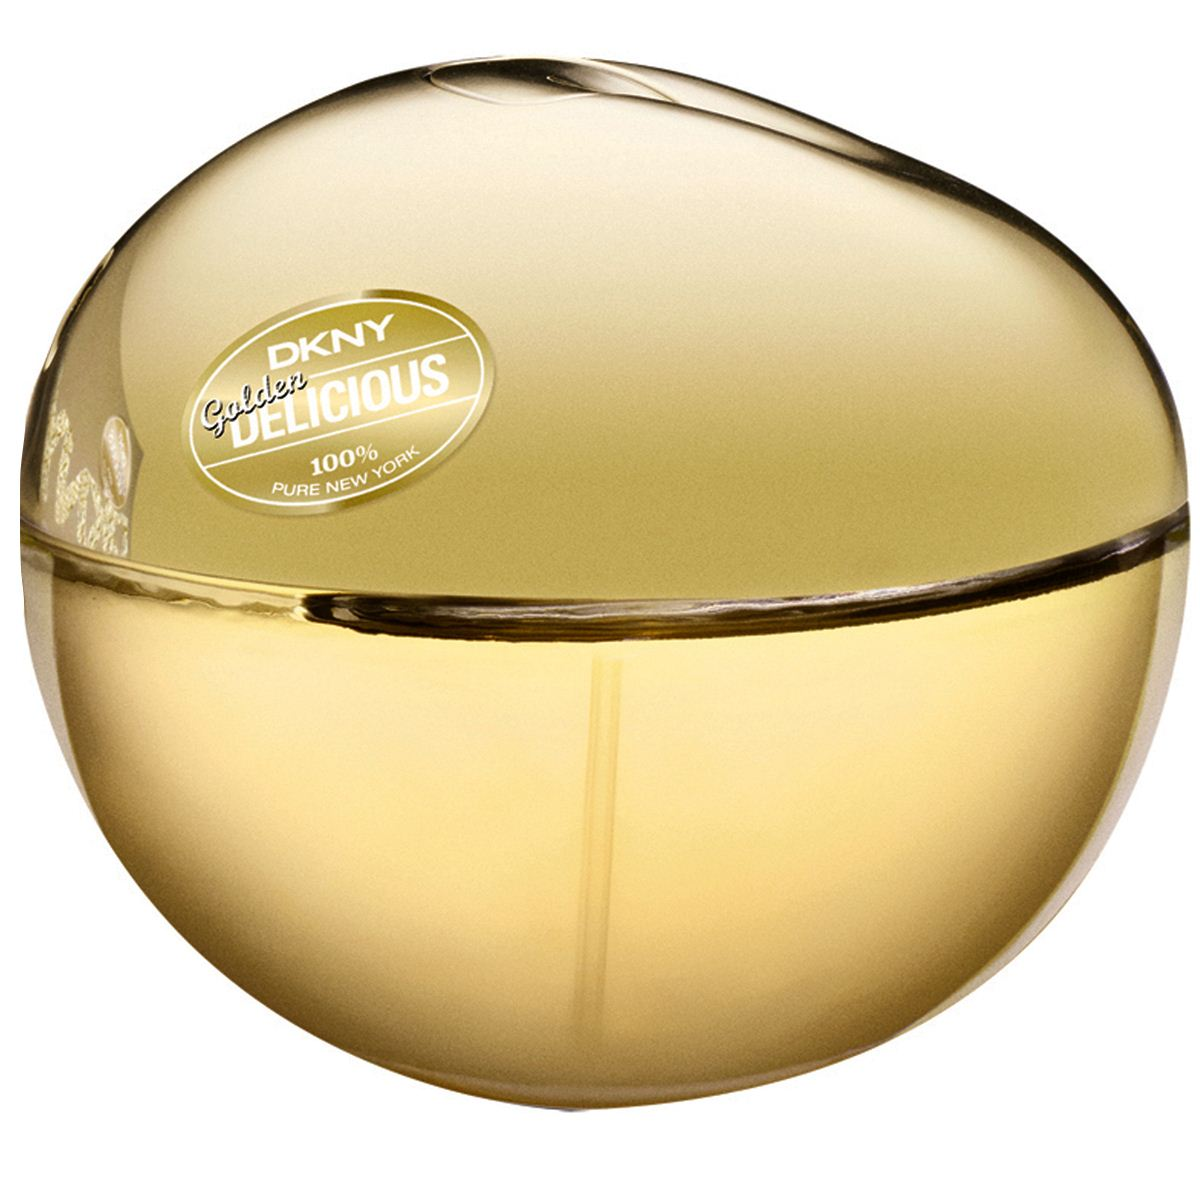 Dkny golden delicious edp vapo